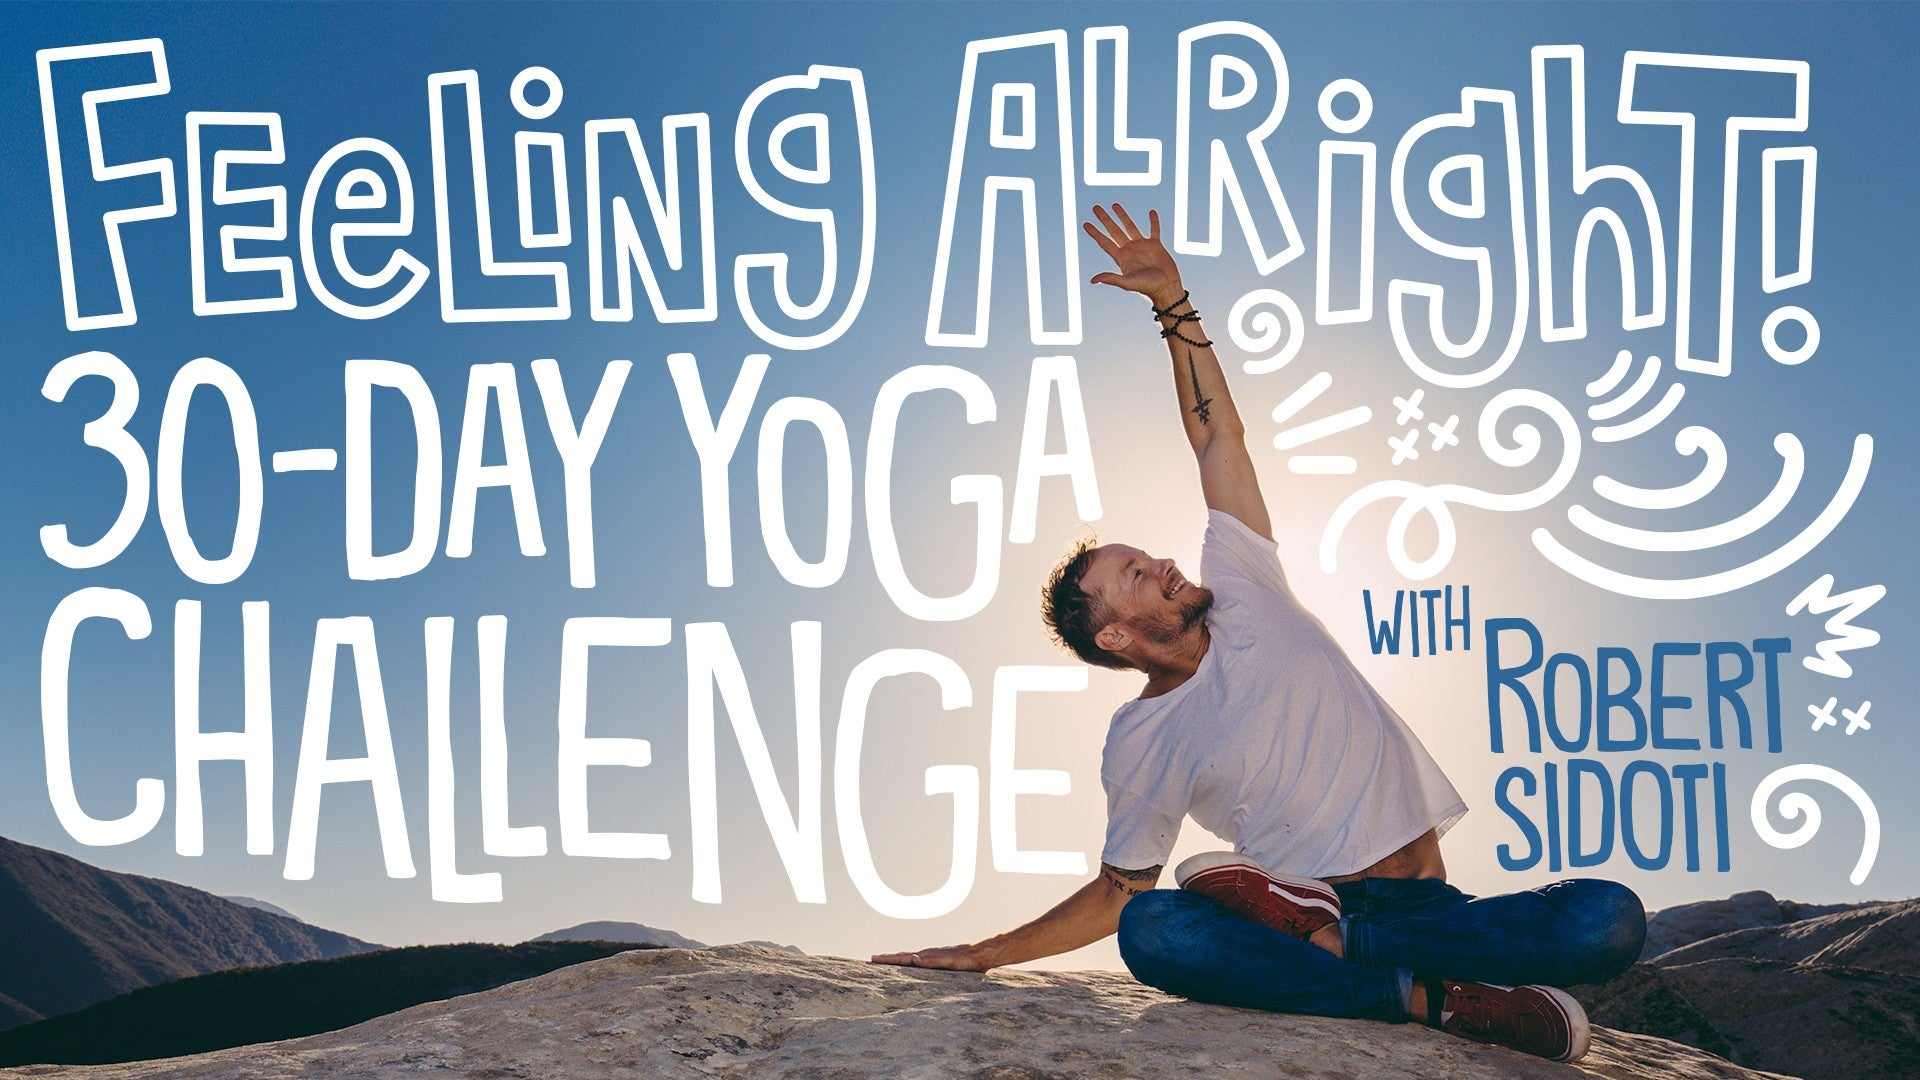 Feeling Alright: 30-Day Yoga Challenge Artwork